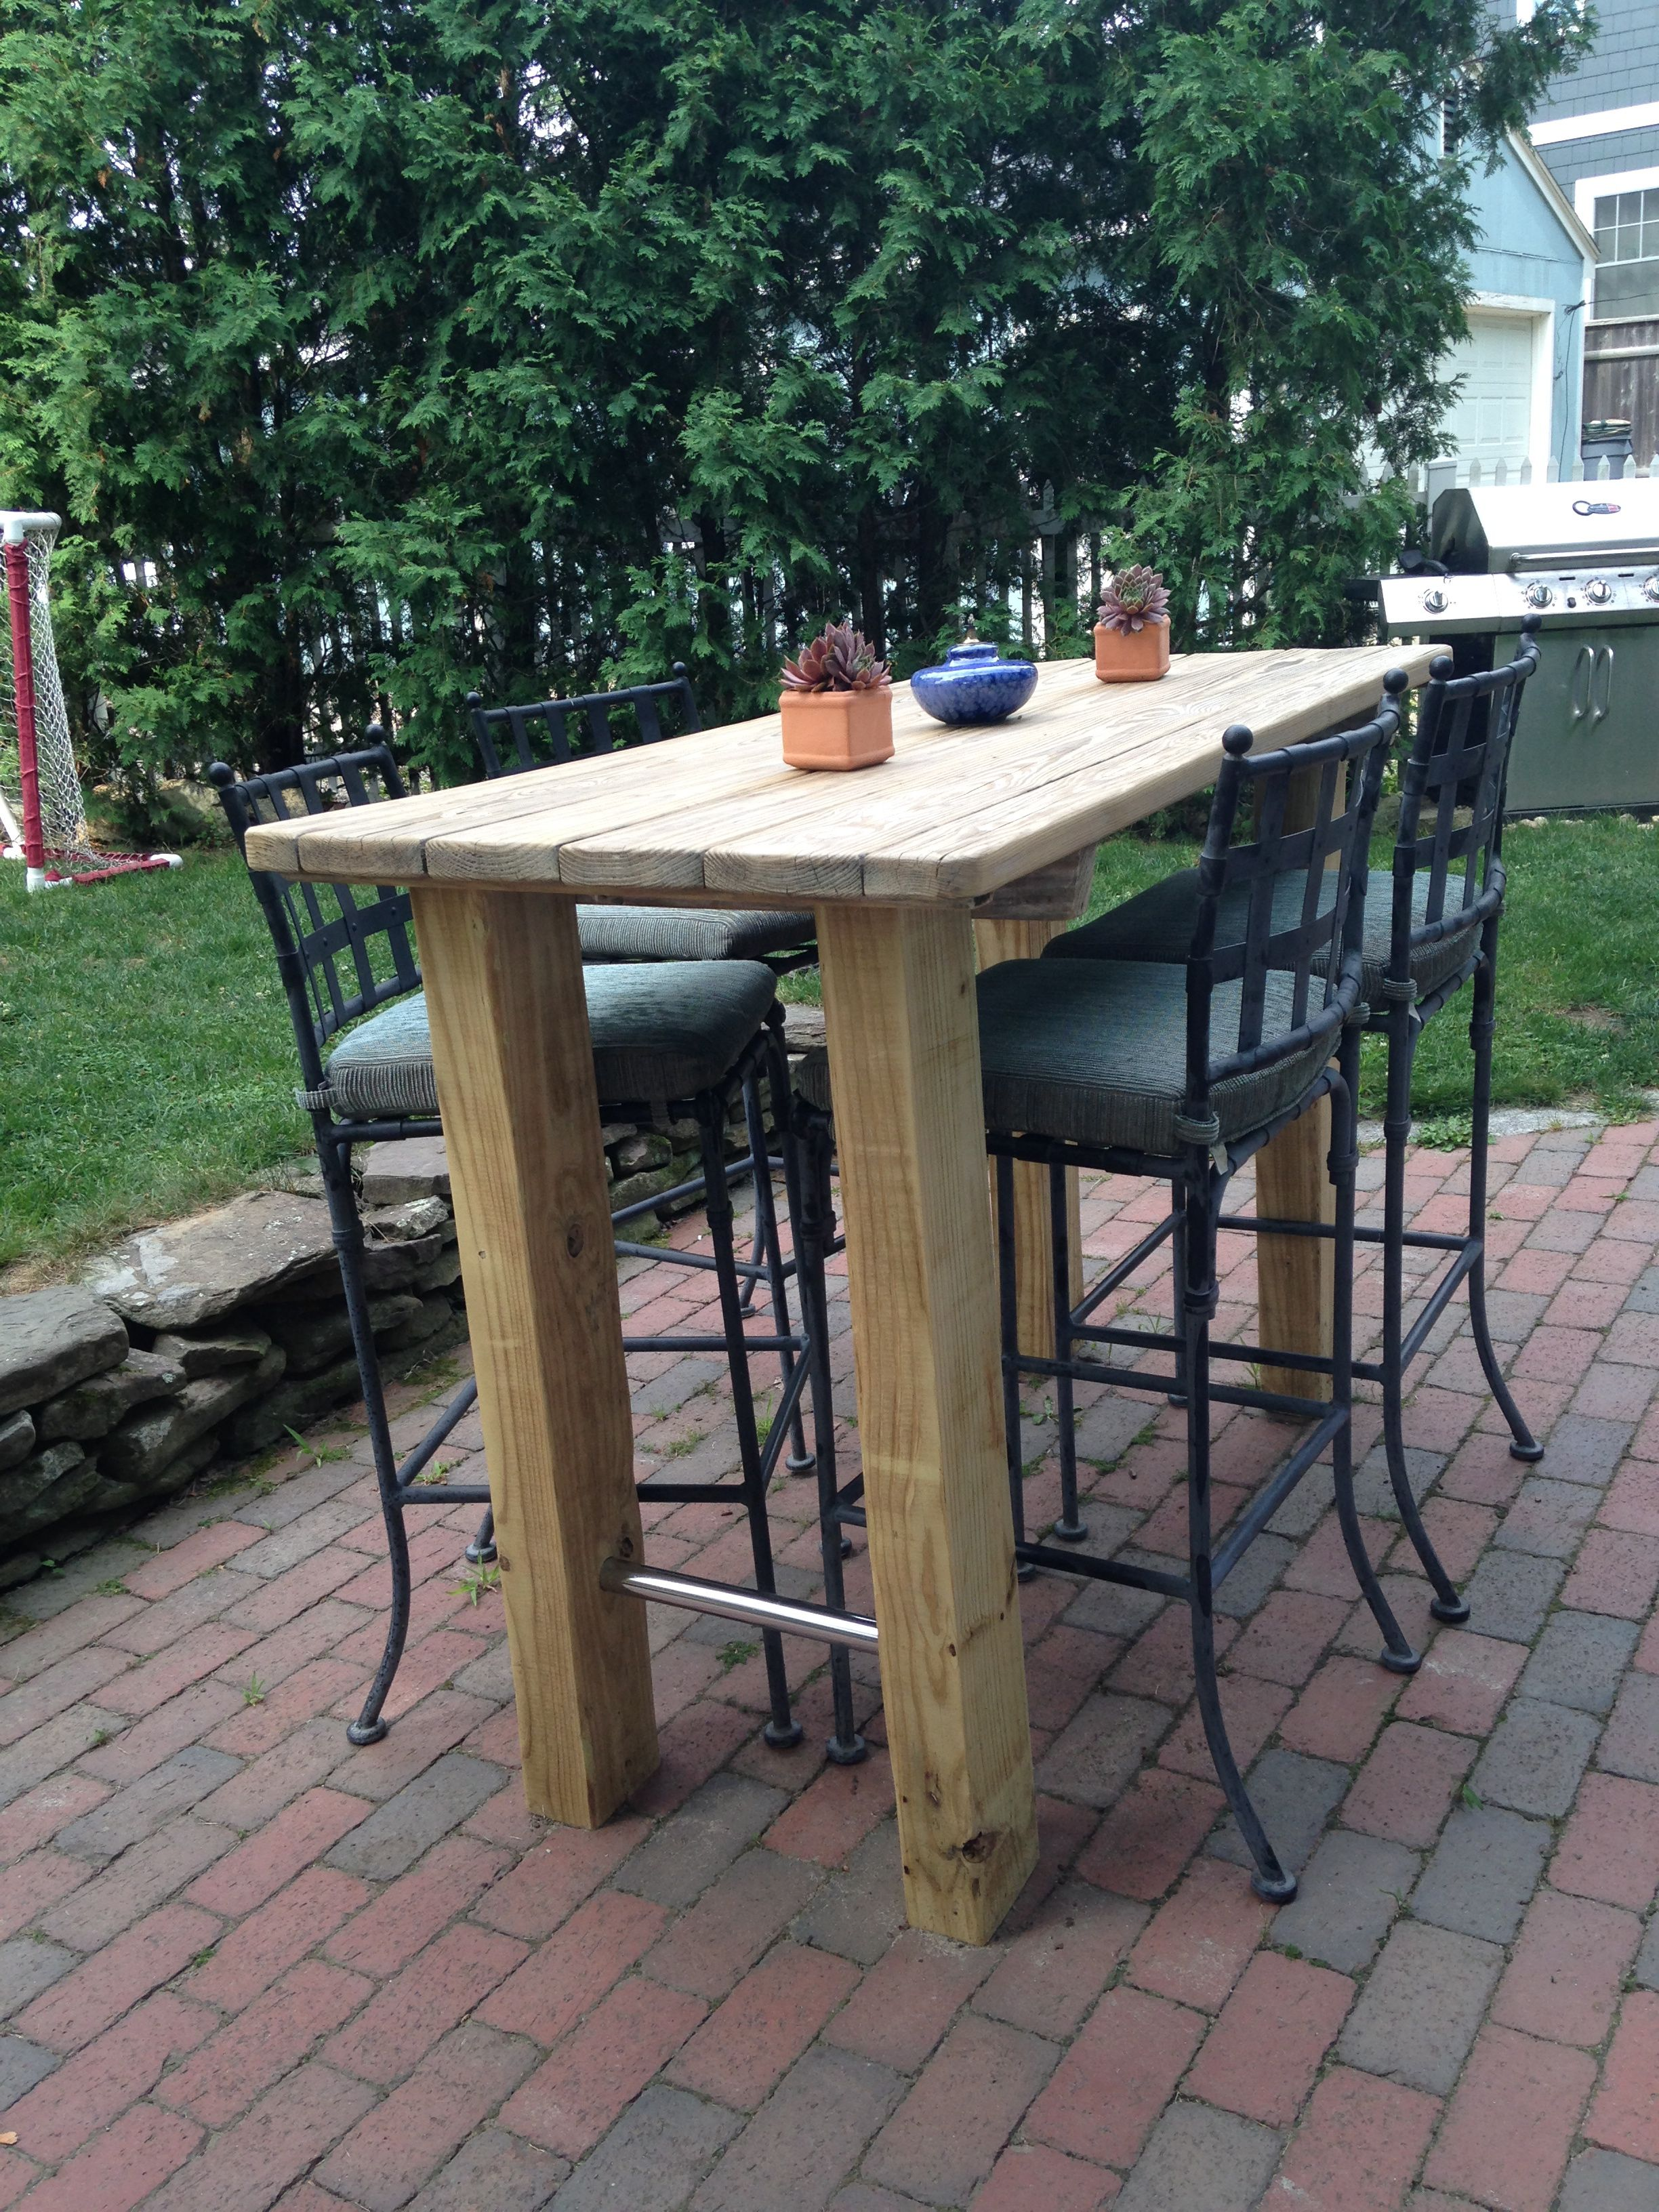 We wanted a bar height table so found an old picnic table for Bar height patio furniture